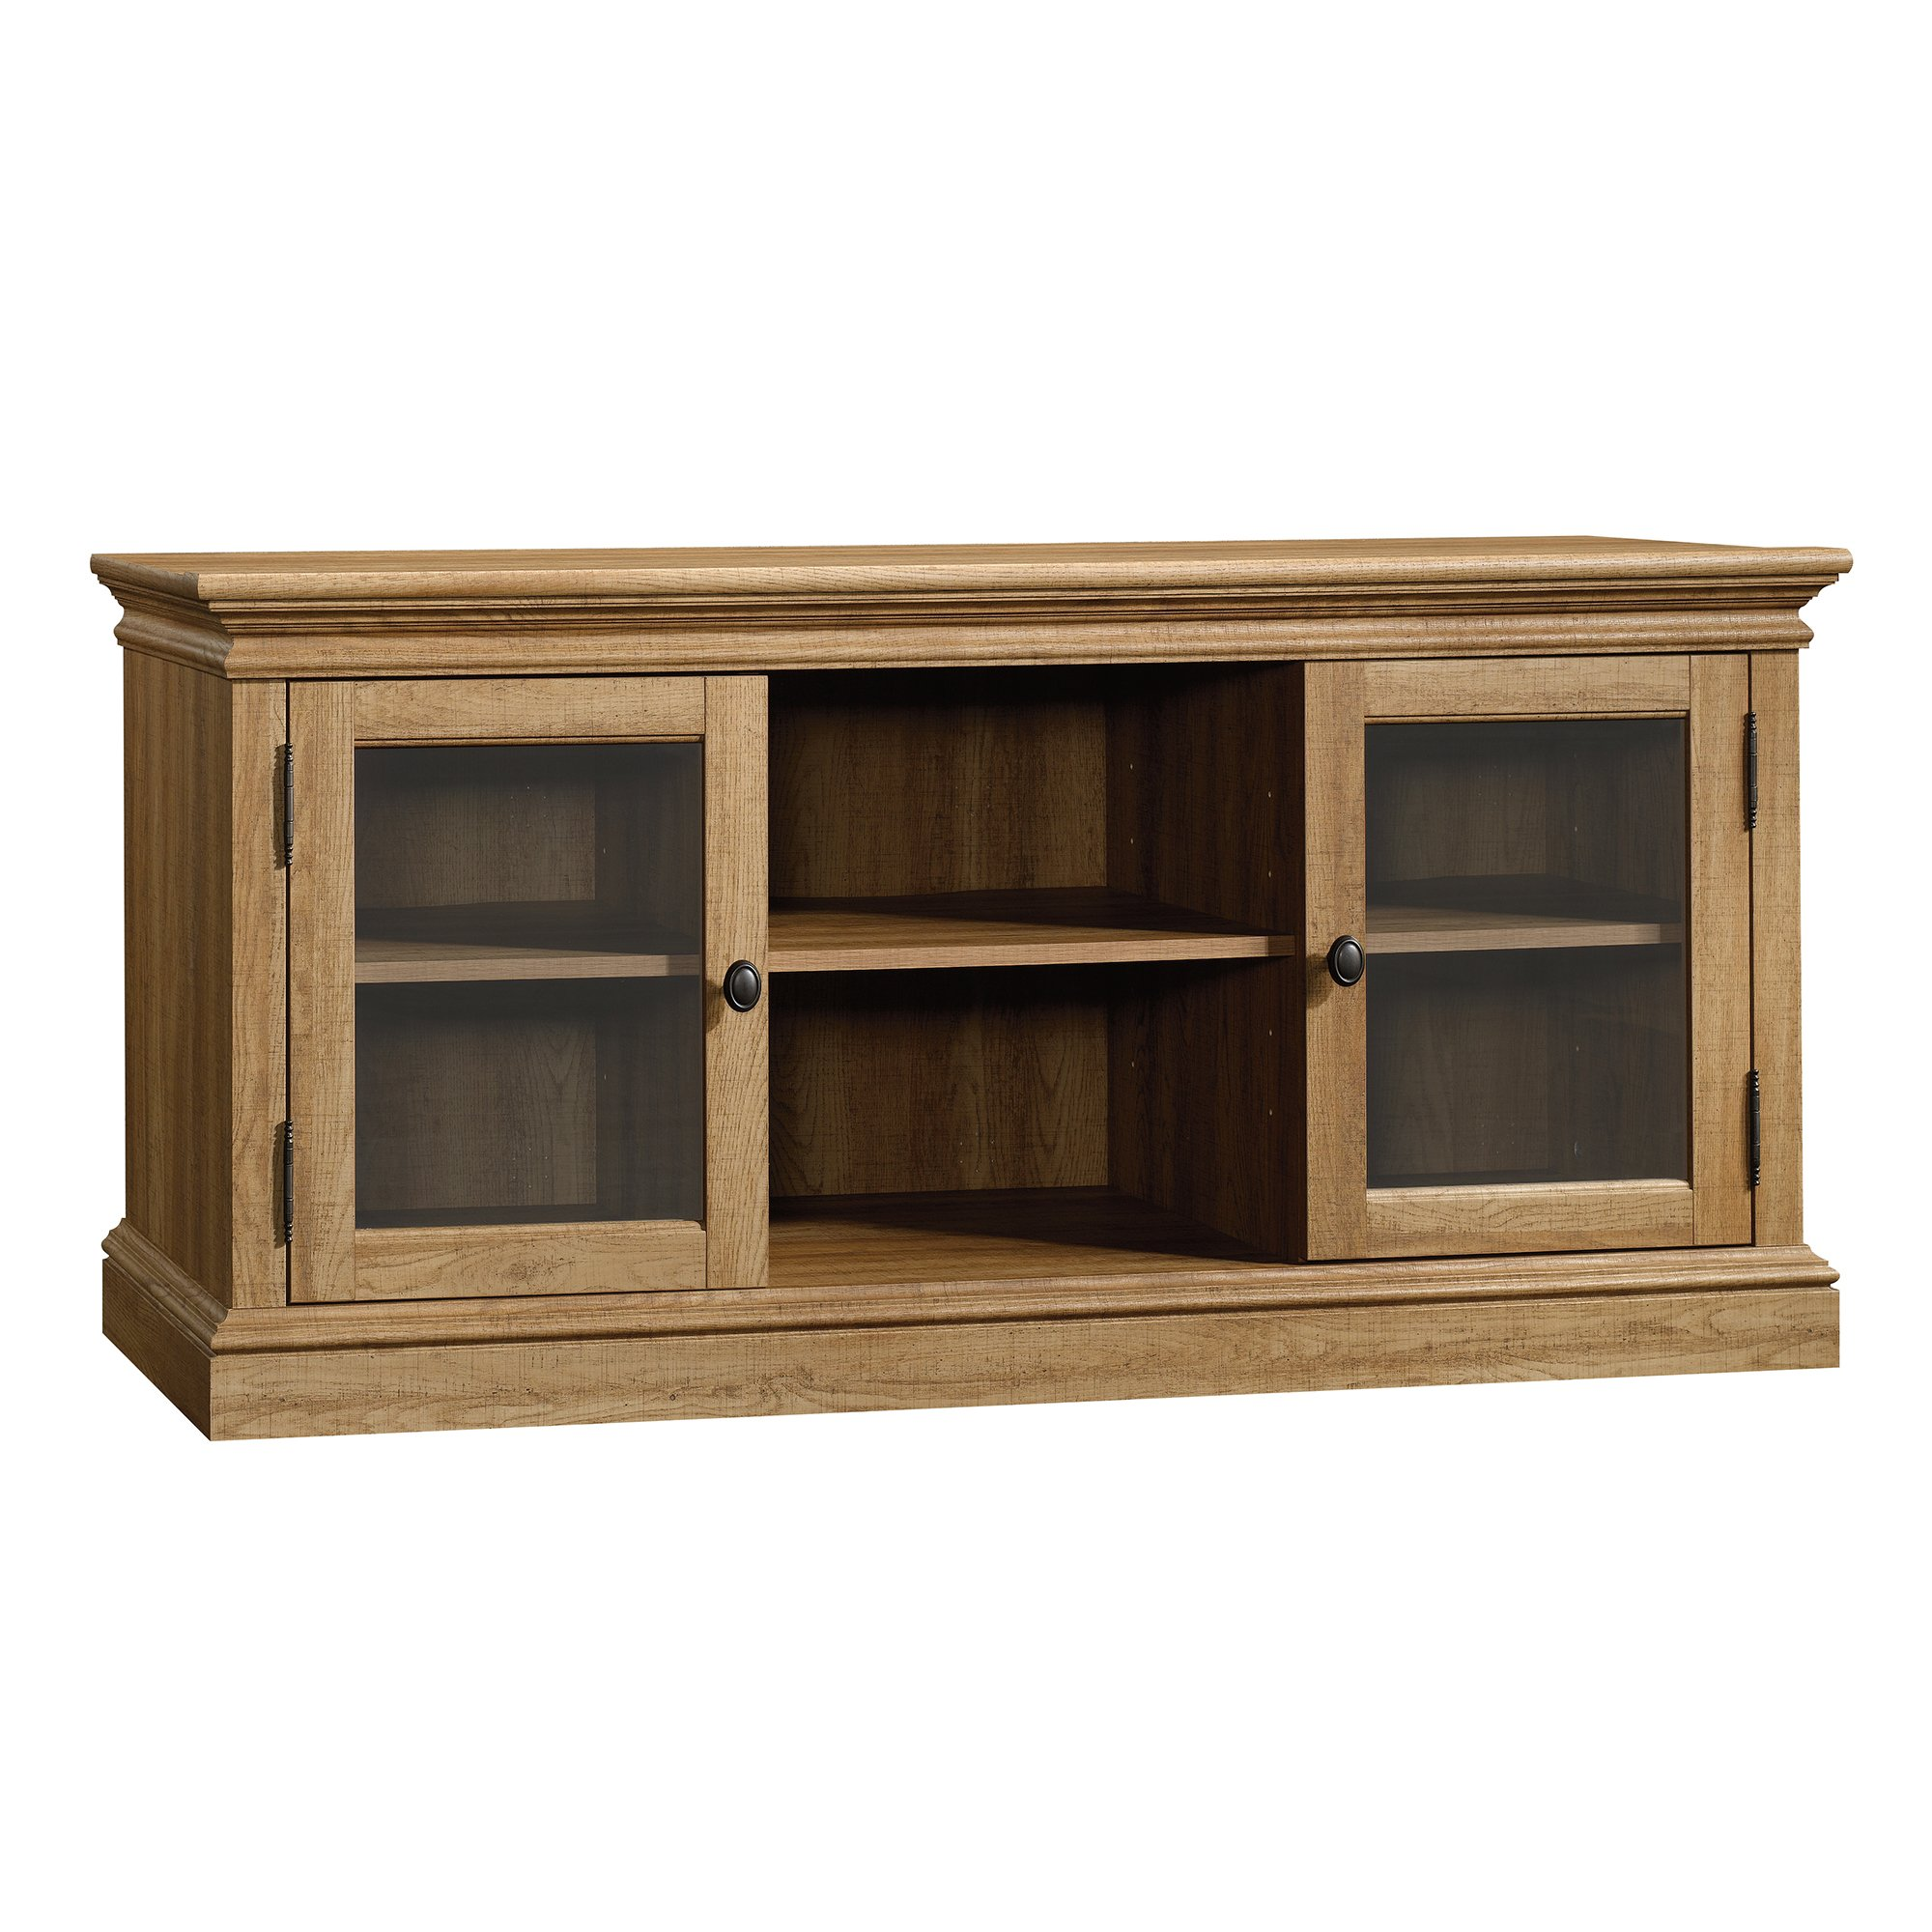 Sauder Barrister Lane Entertainment Credenza Sco